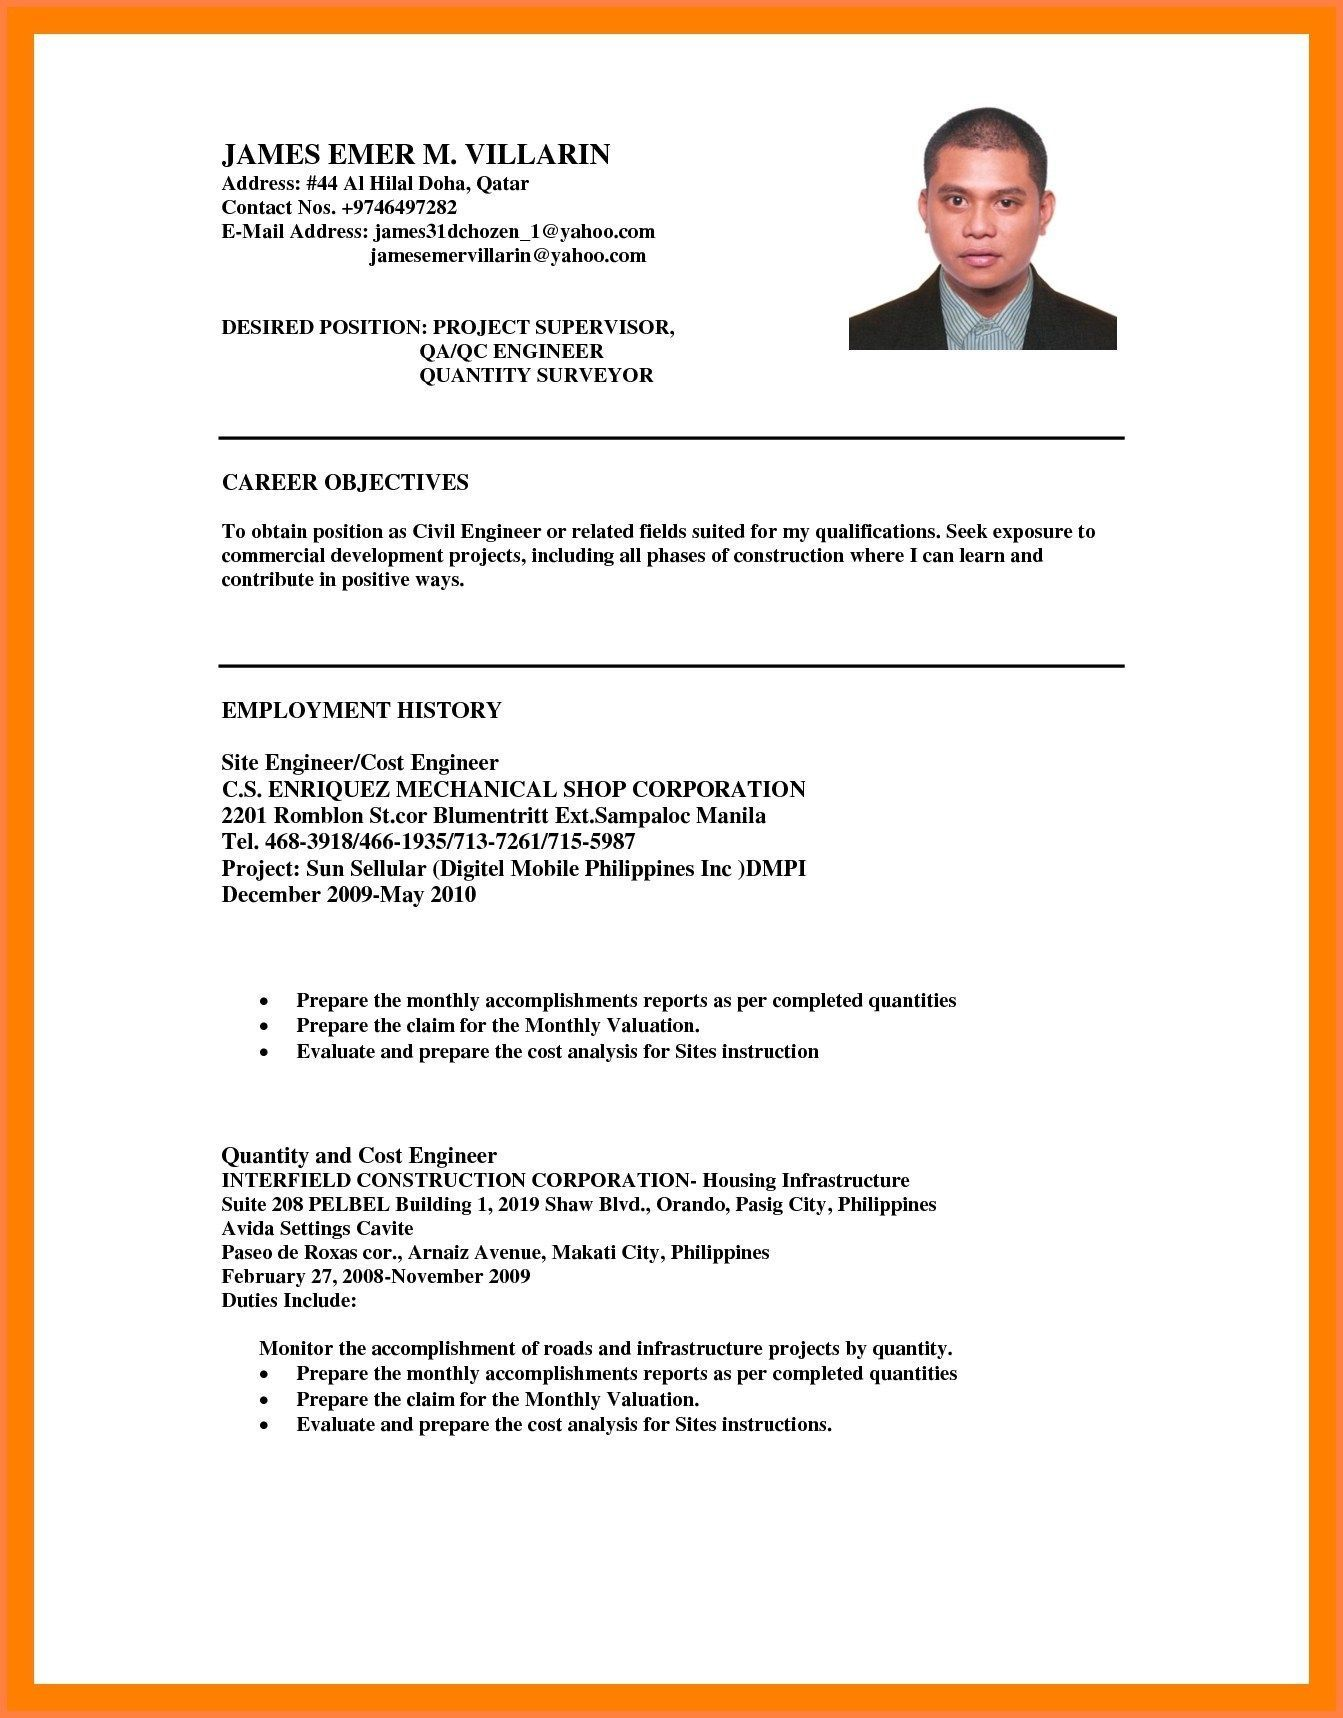 Are You Looking For Resume Tips Objective In A Resume The Objective Written On The First P Resume Tips Career Objectives For Resume Career Objective Examples